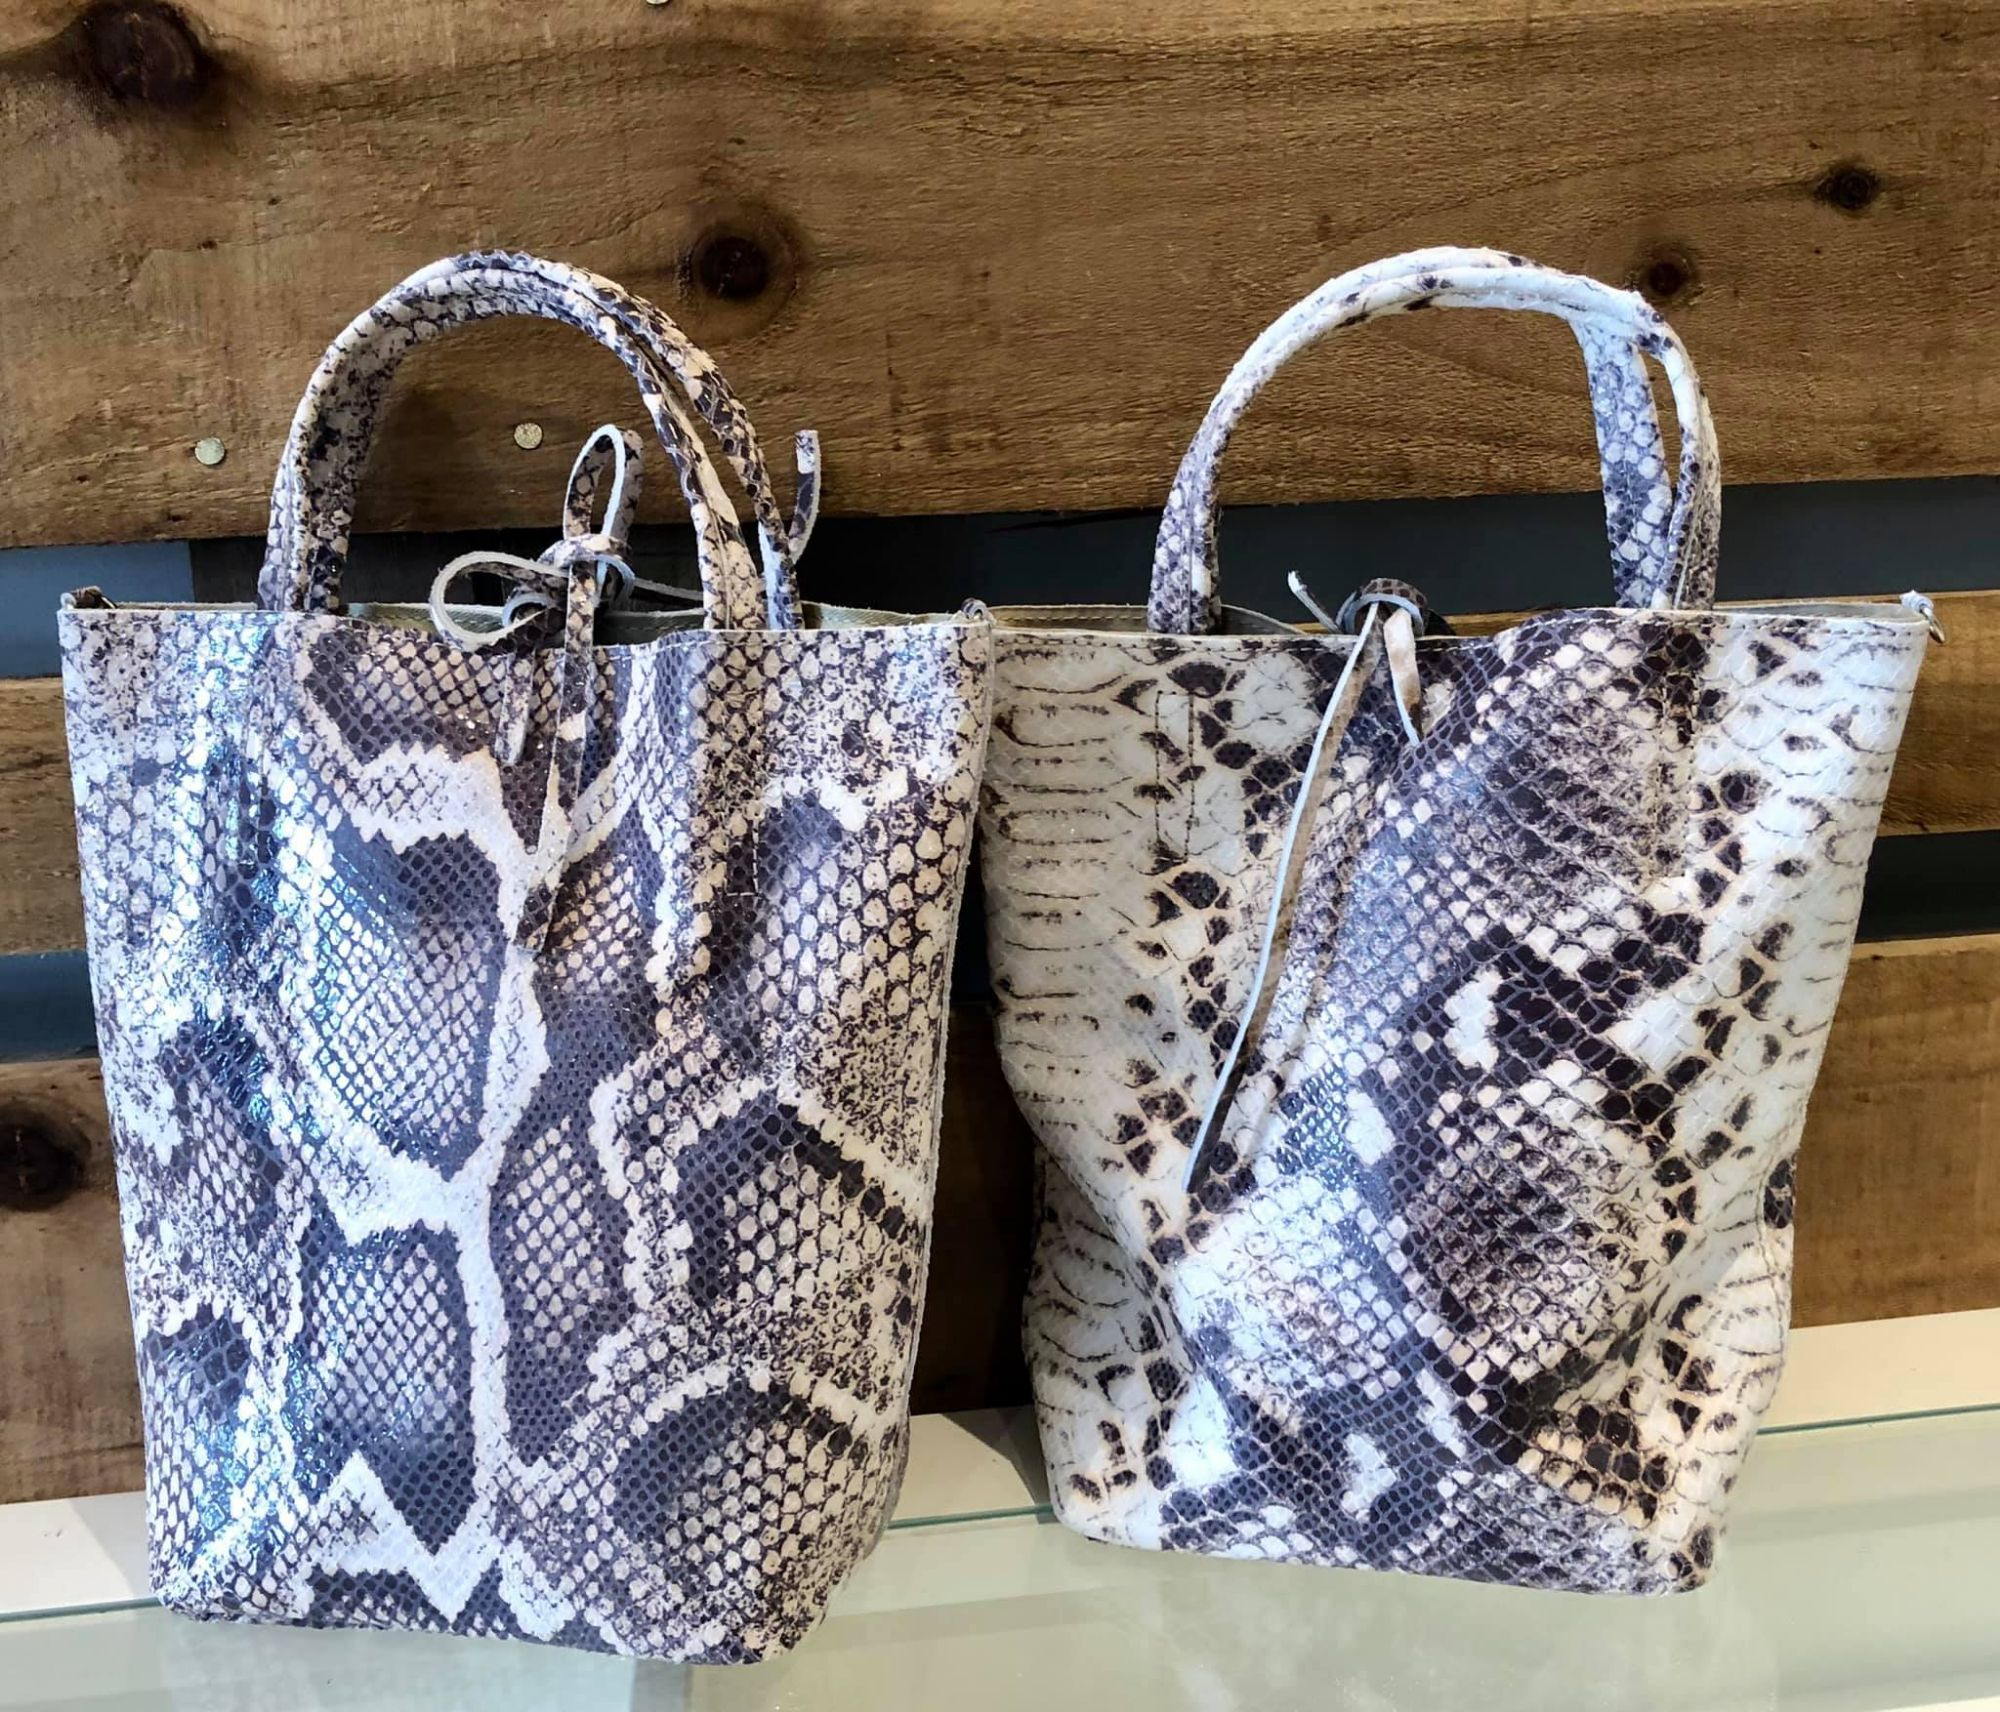 Handbags at The Little Boutique